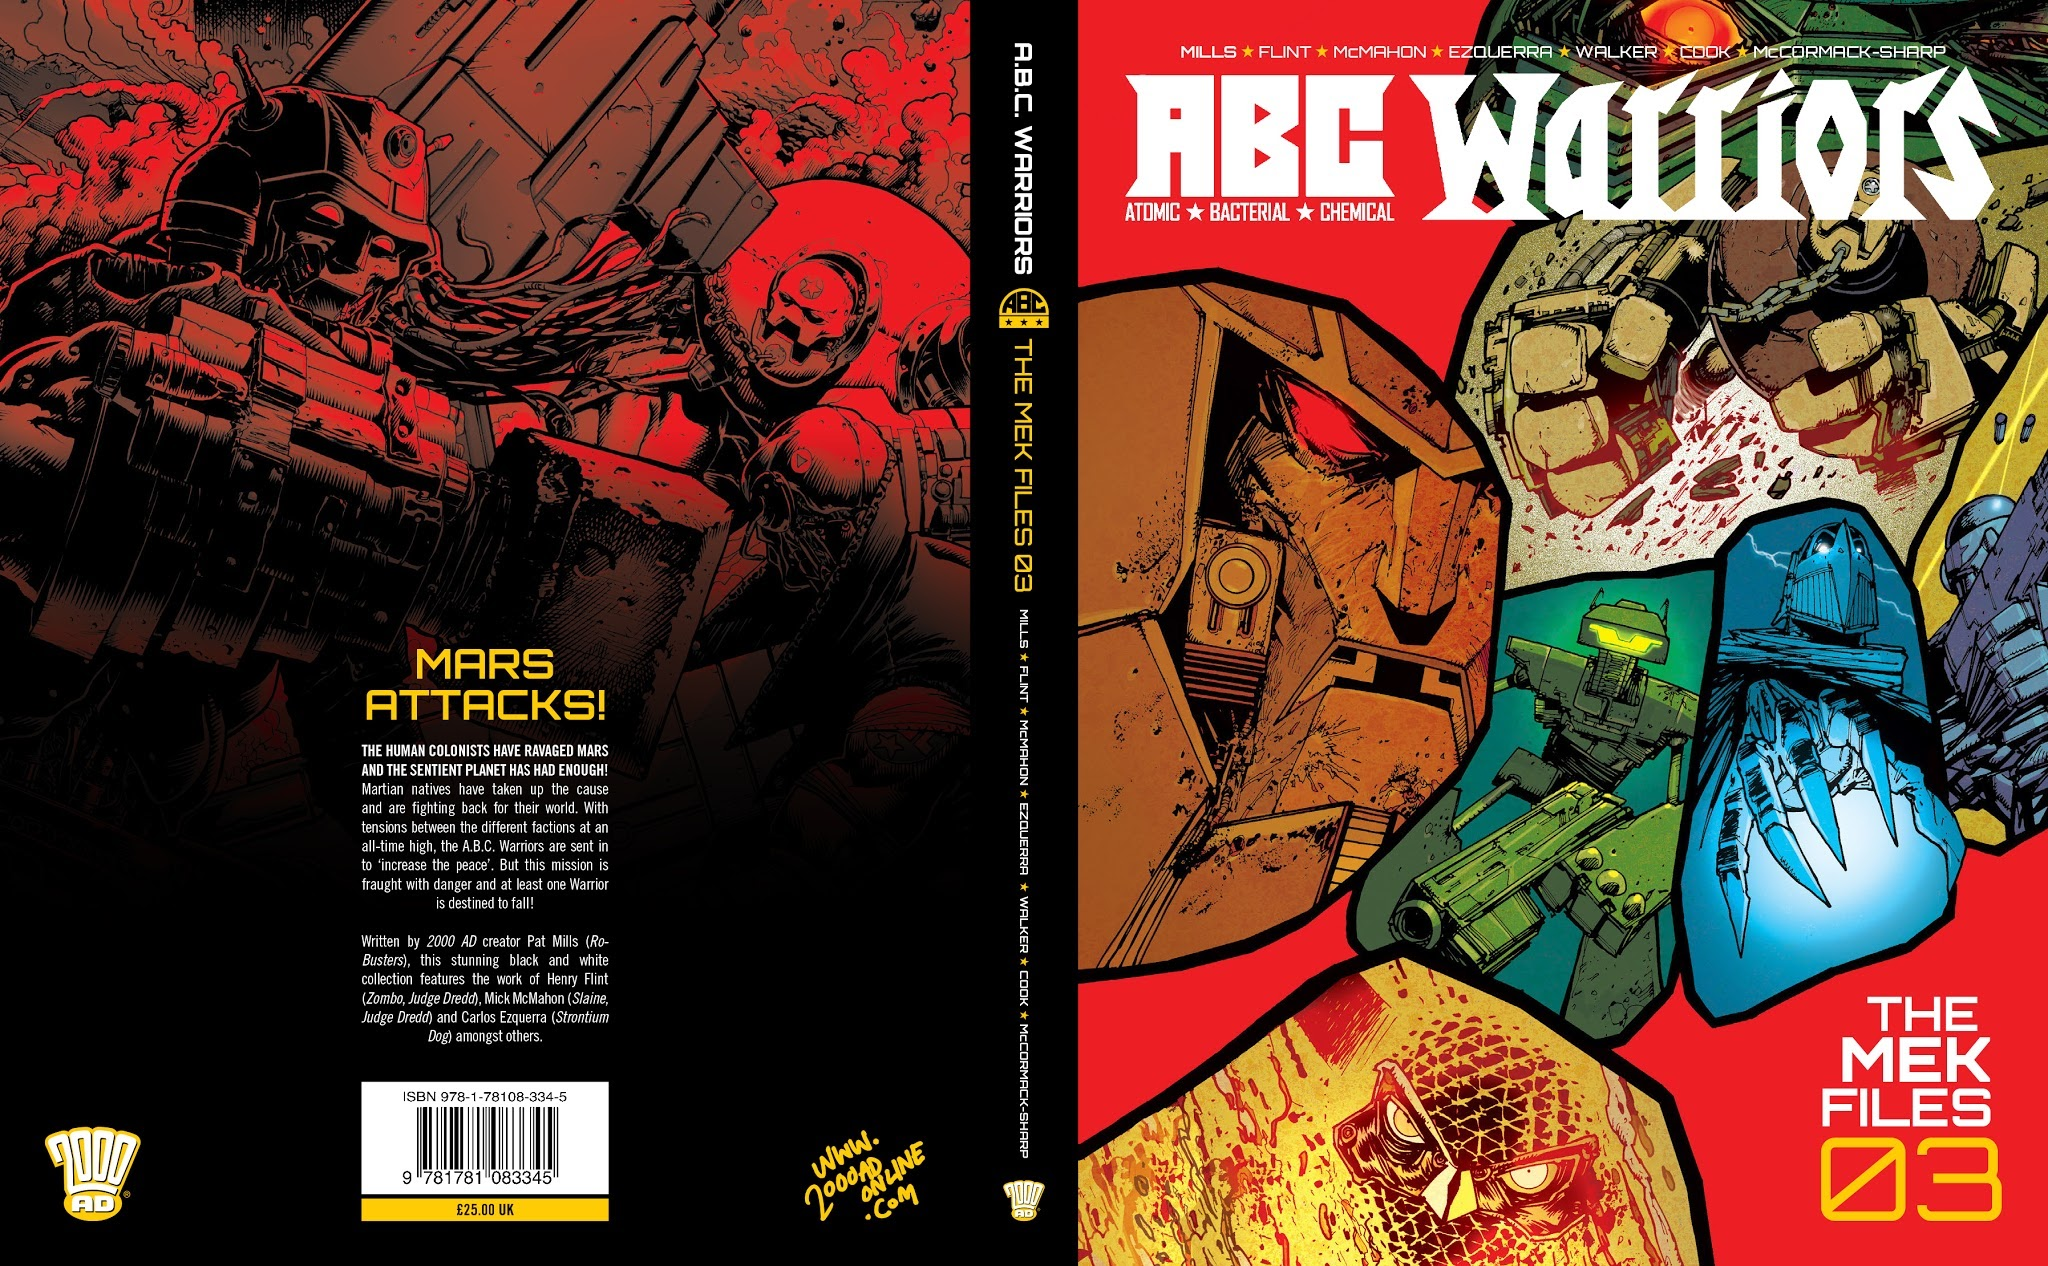 ABC Warriors: The Mek Files TPB_3 Page 1